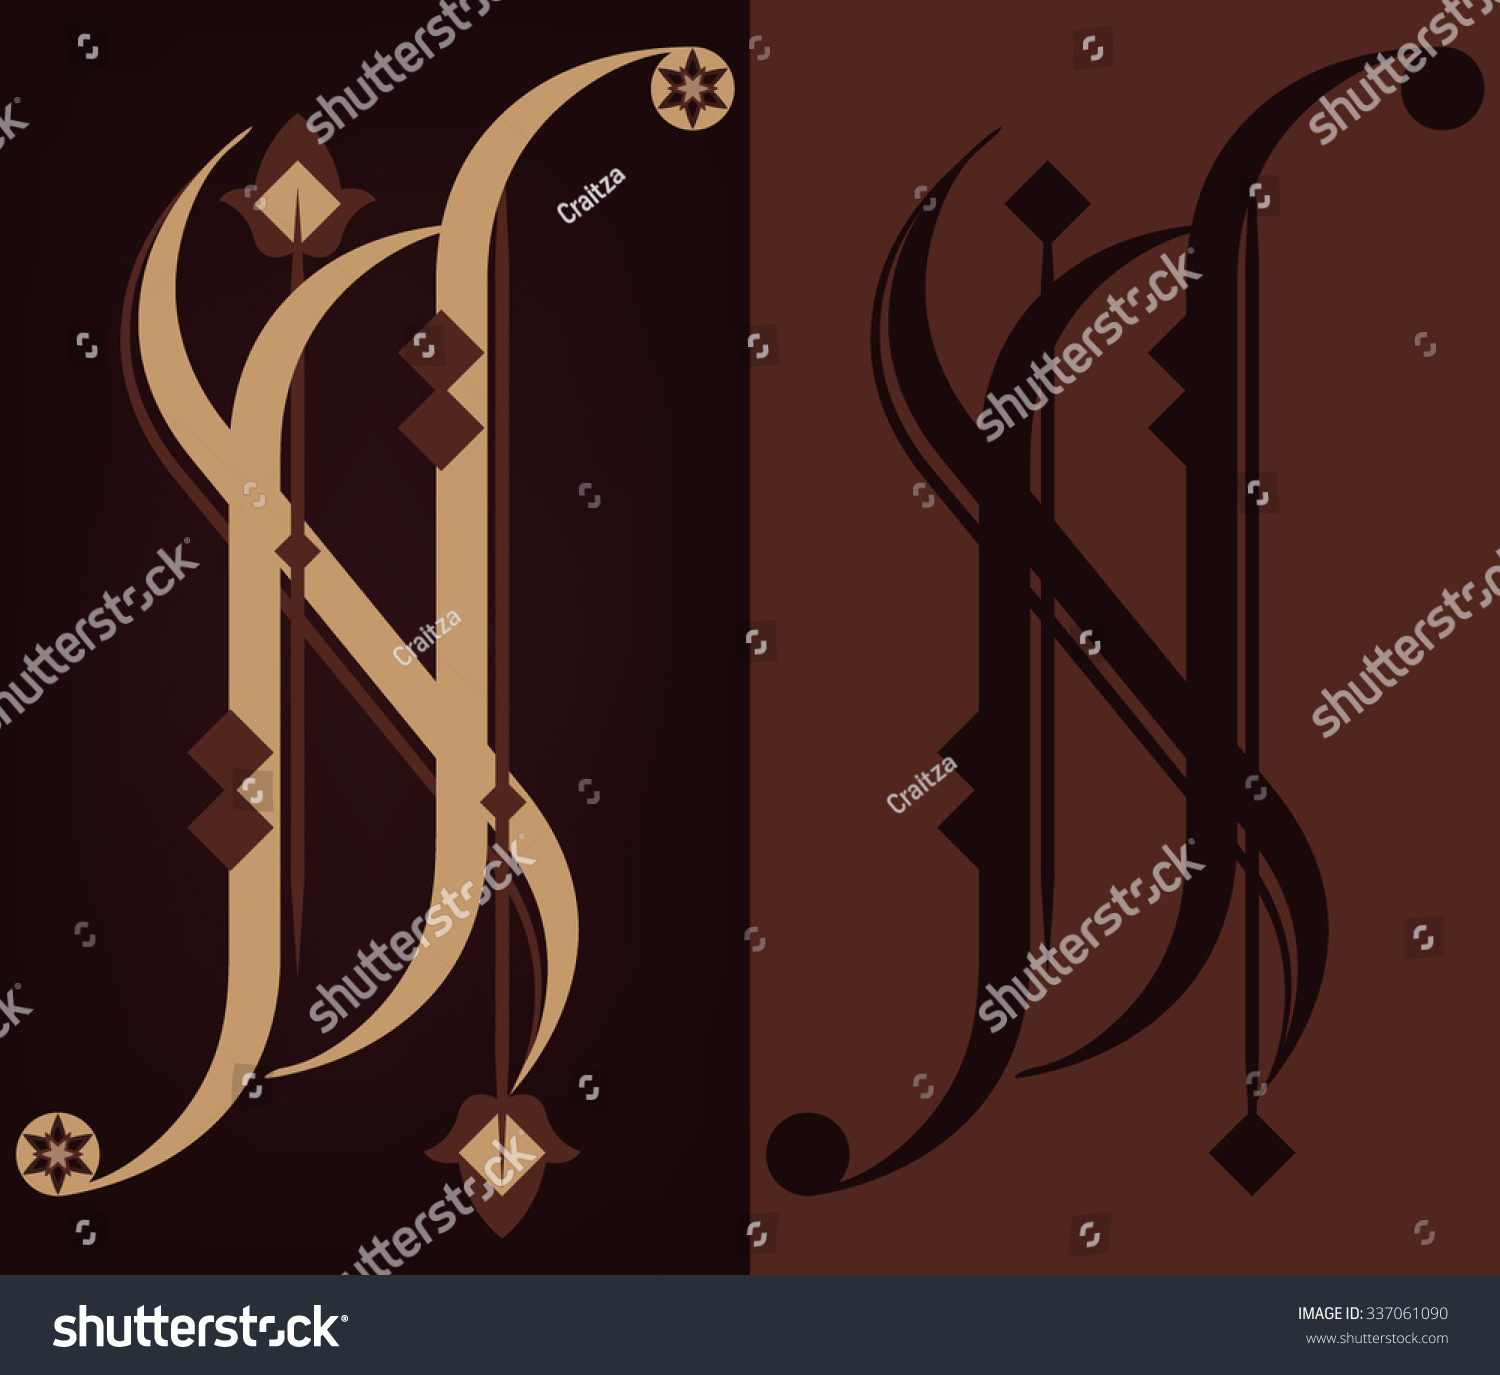 Capital N Letter Gothic Ornamental Decorative Stock Vector 337061090